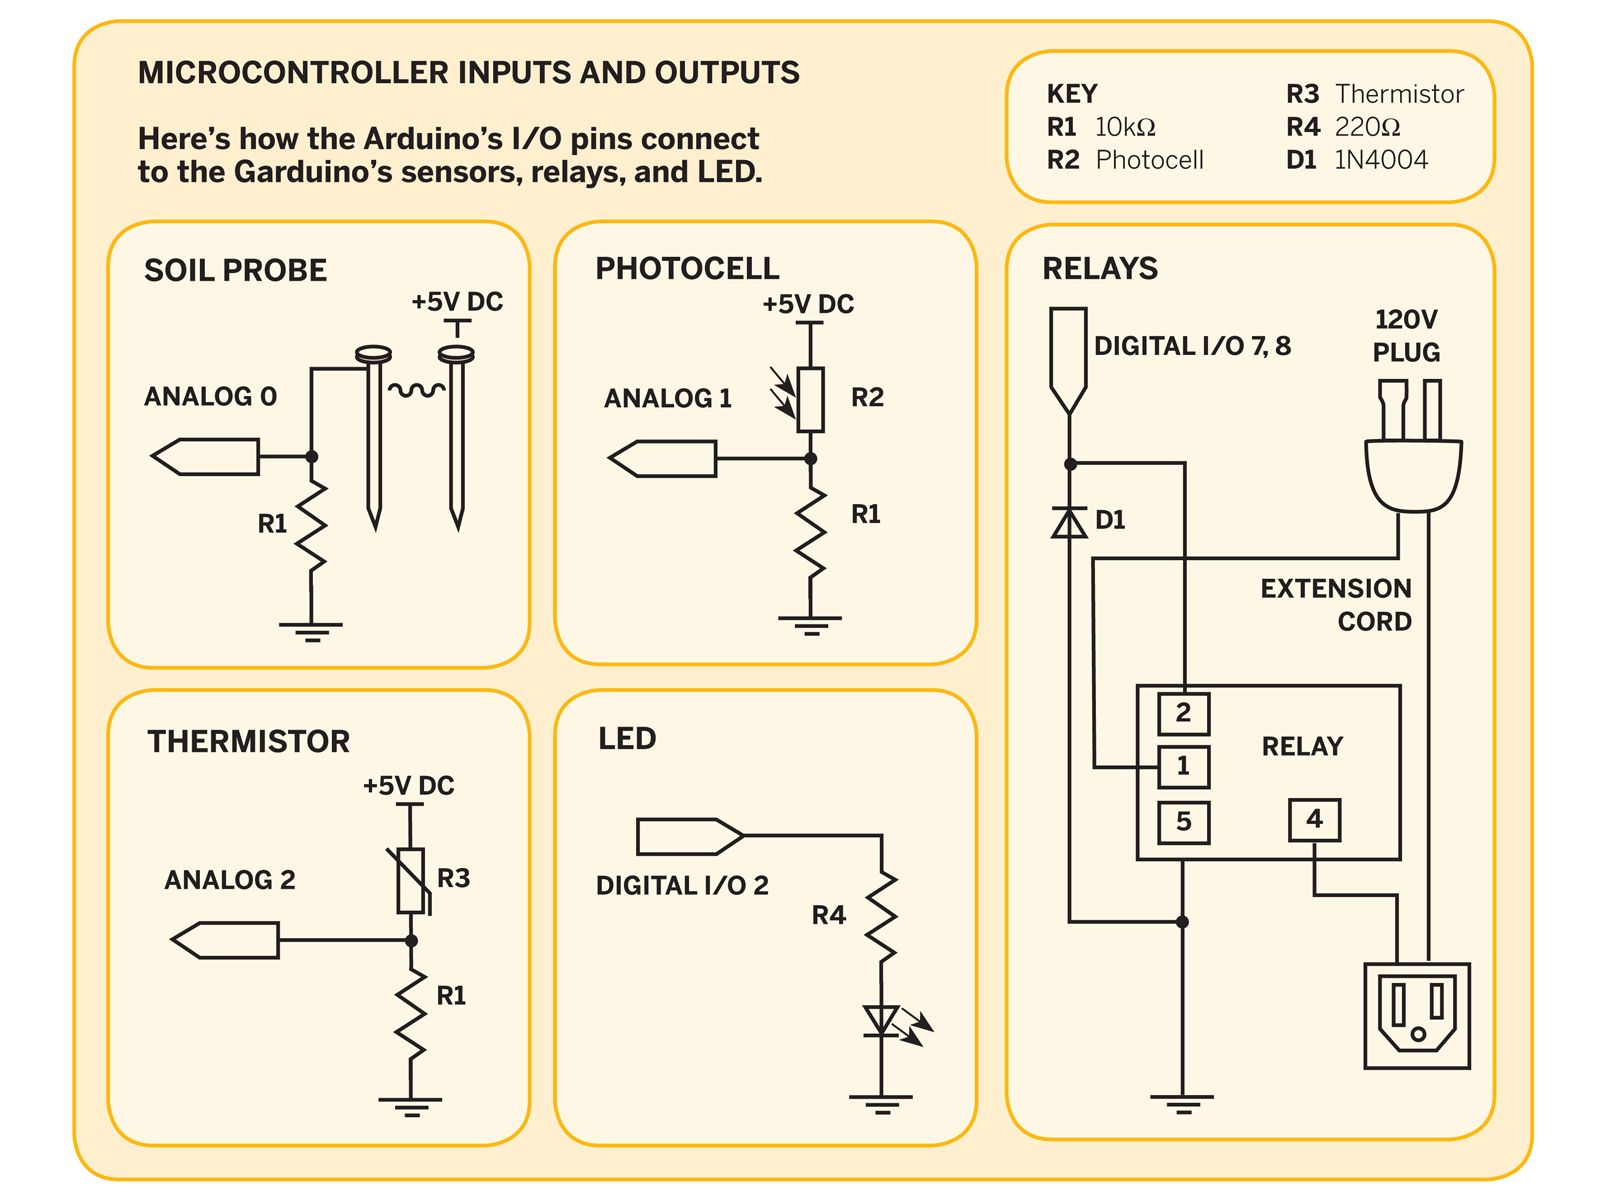 Wiring Diagram For 120v Photocell | schematic and wiring ...